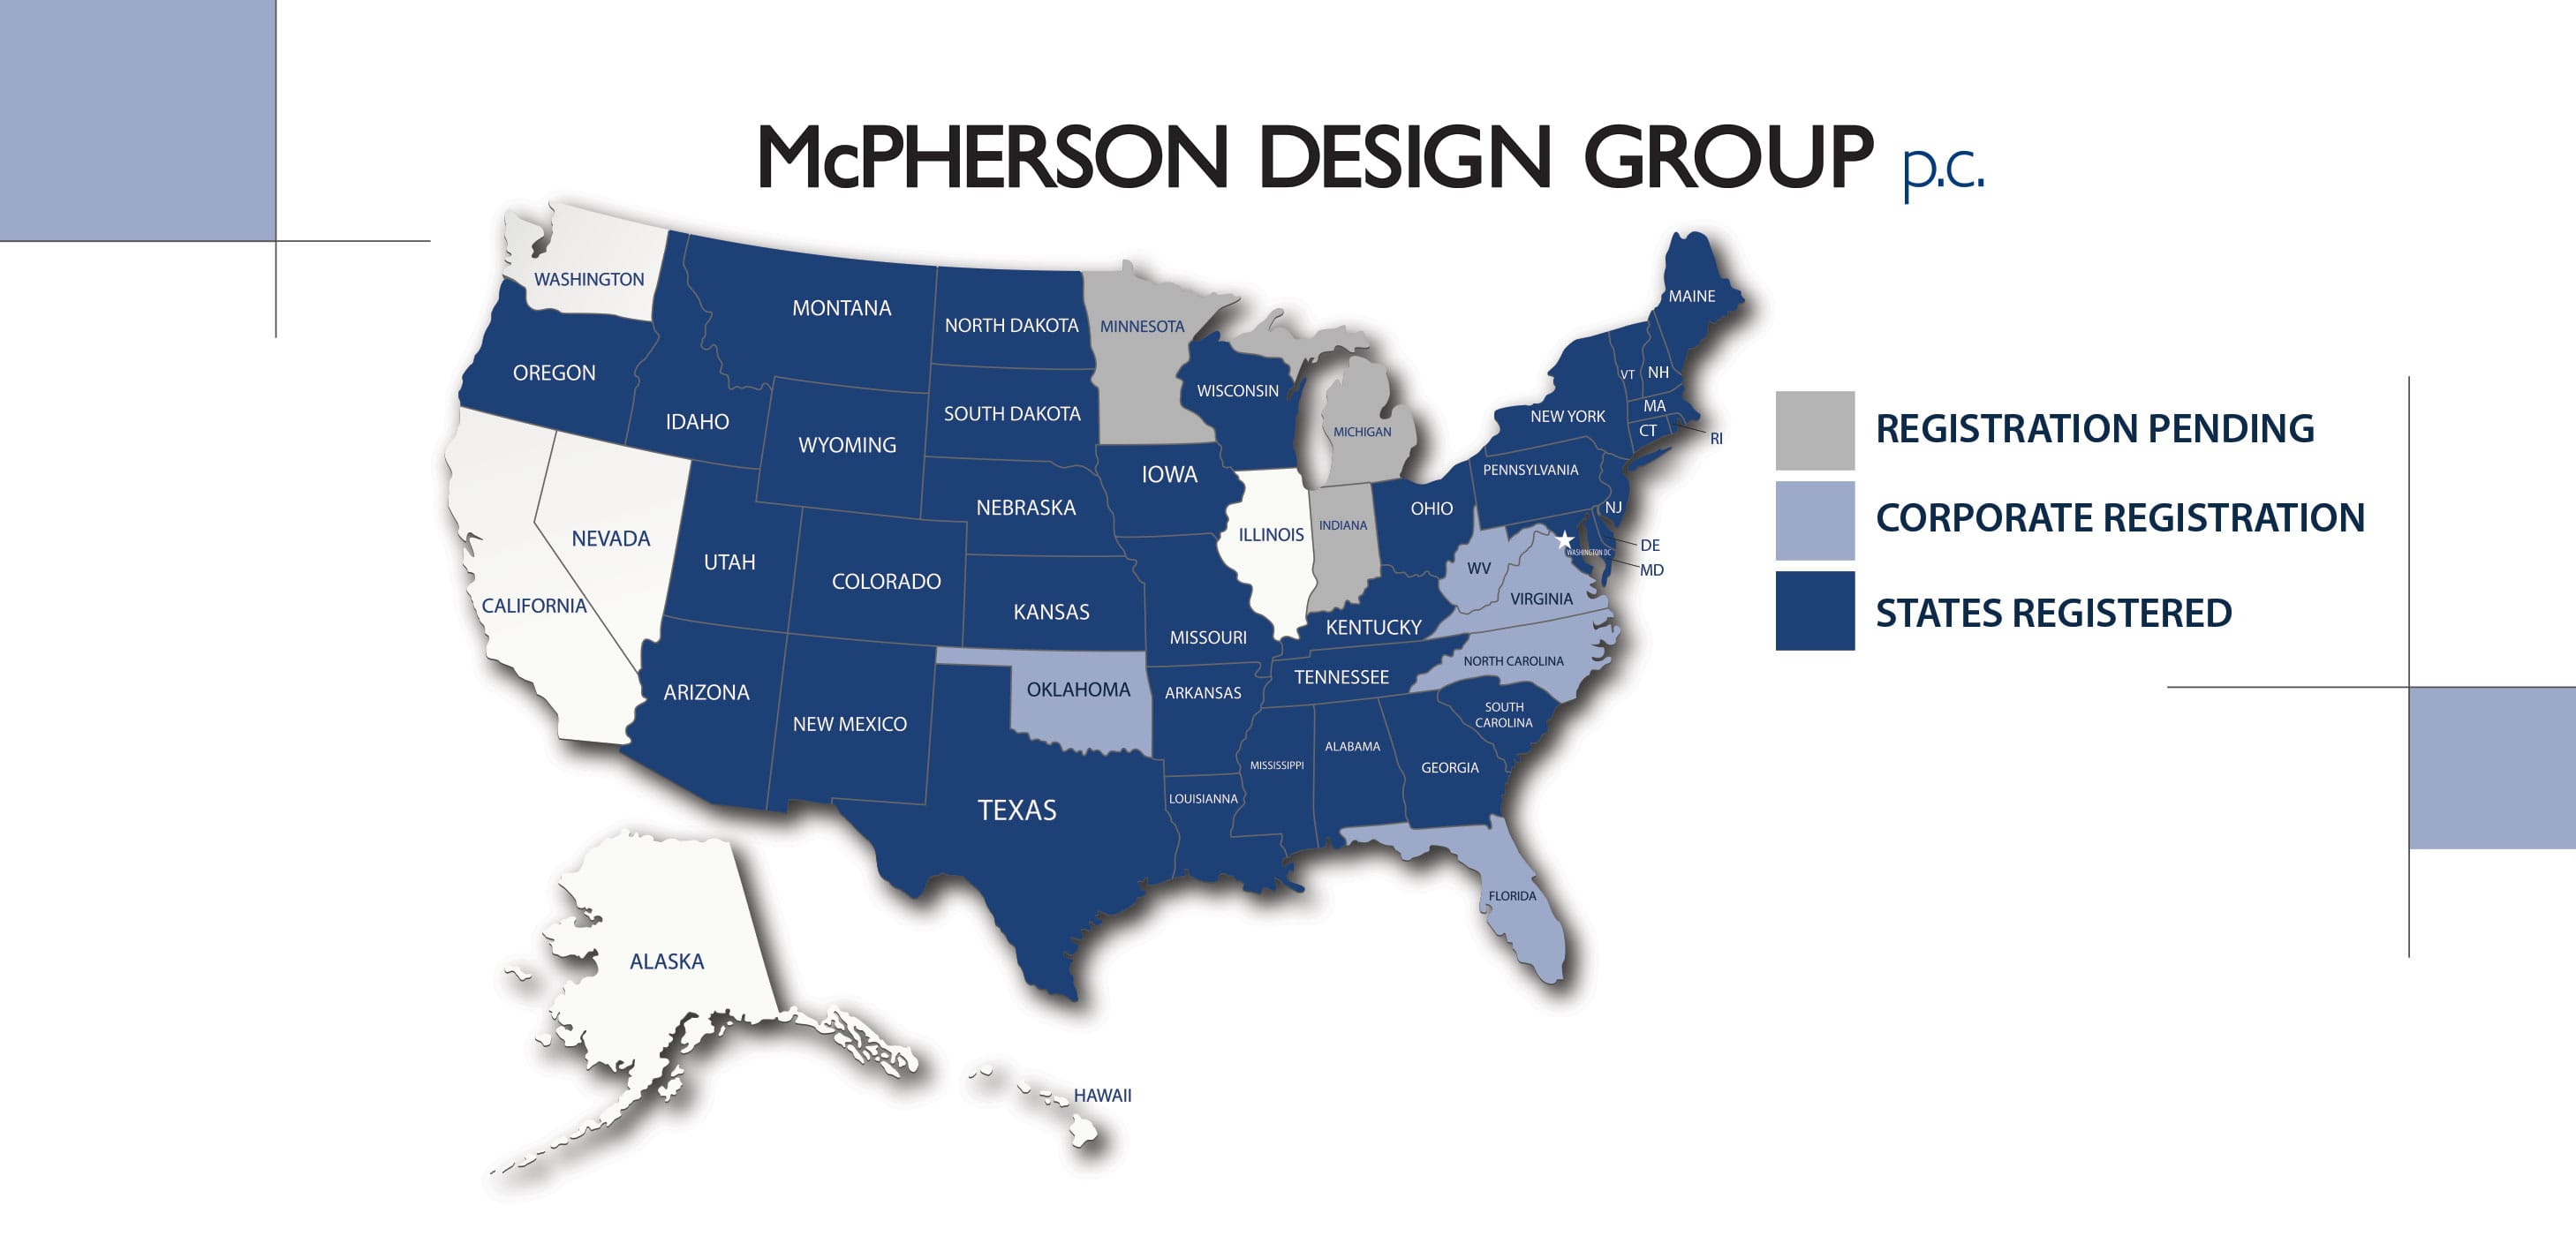 McPherson Design Group licensed states